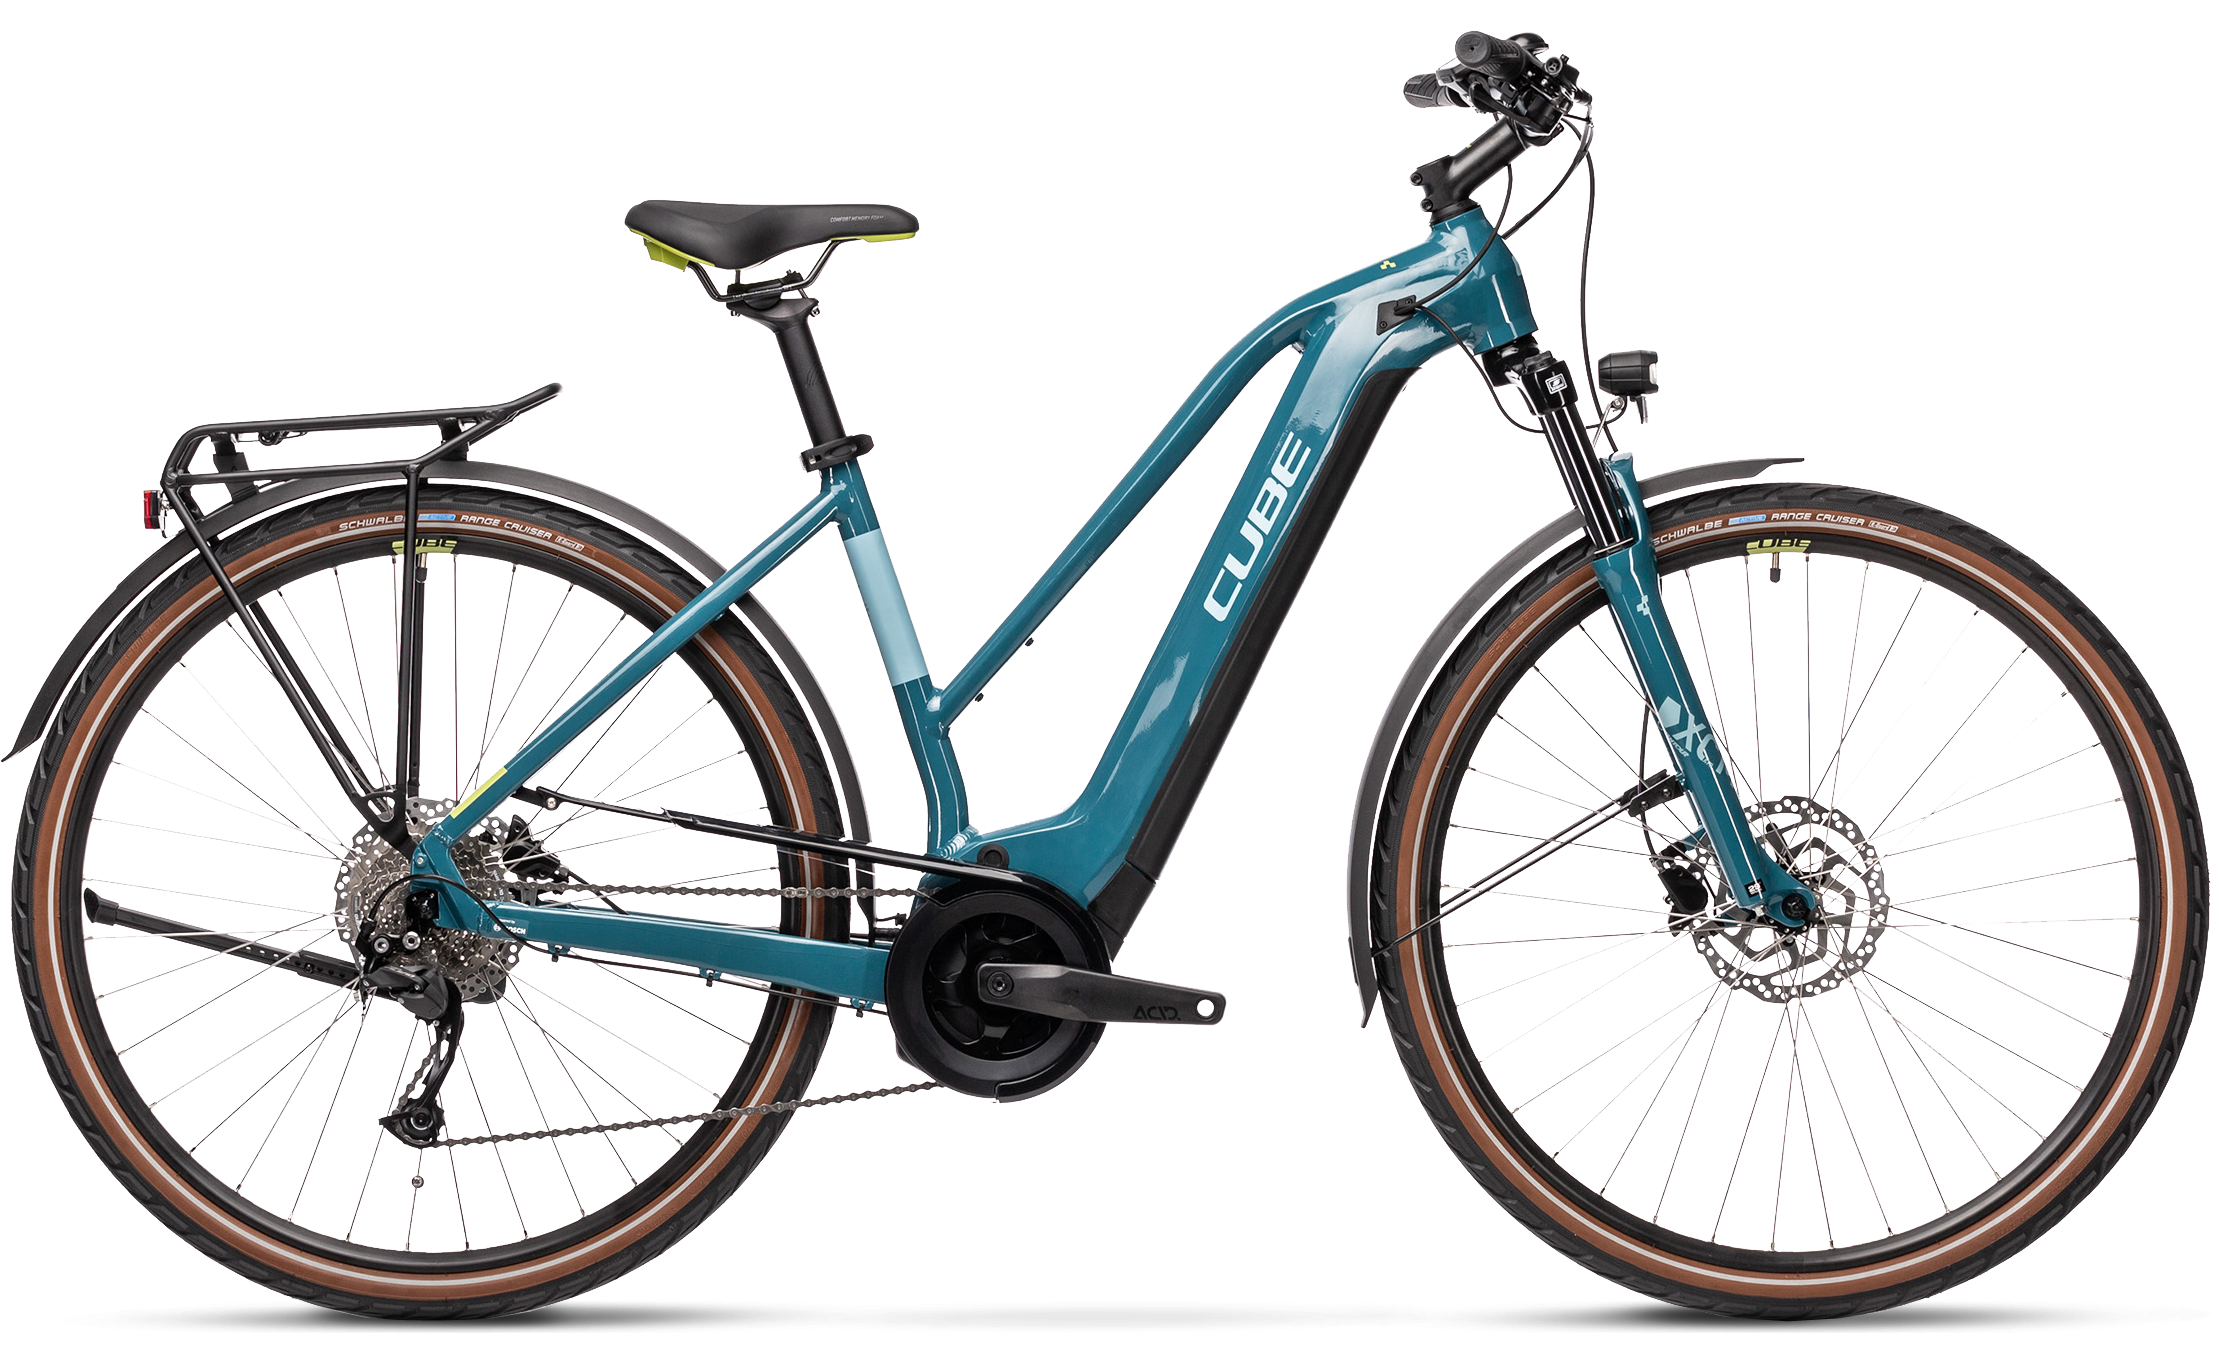 https://w8w5m3f8.stackpathcdn.com/23436/vtc-electrique-cube-touring-hybrid-one-400-500-625wh-cadre-mixte.jpg